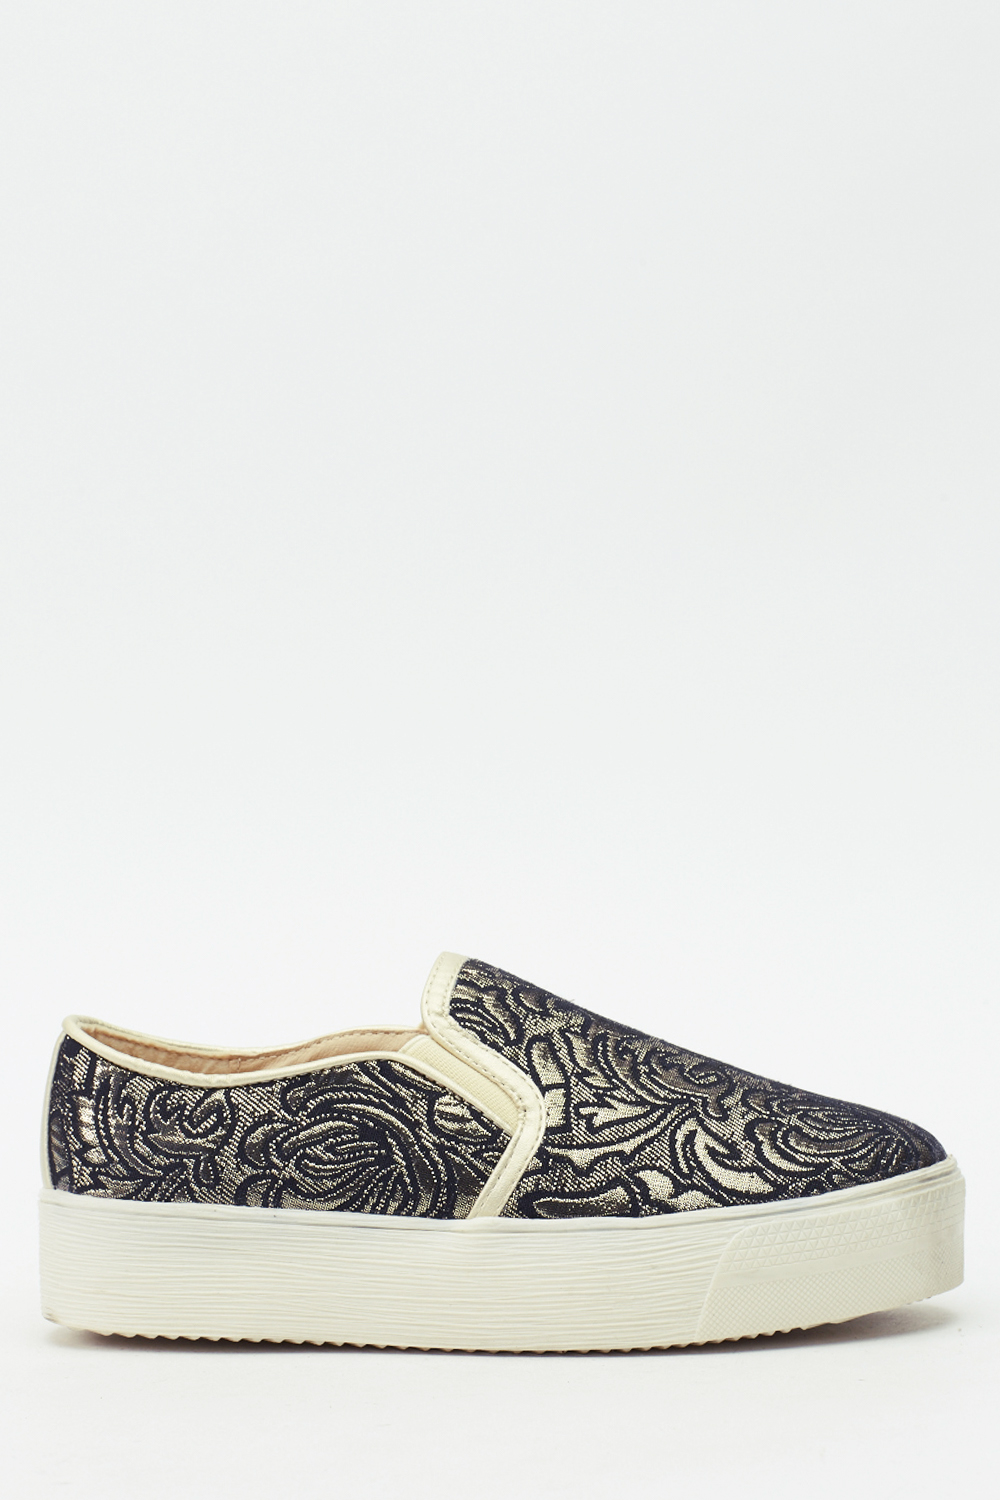 metallic textured slip on shoes black or gold just 163 5